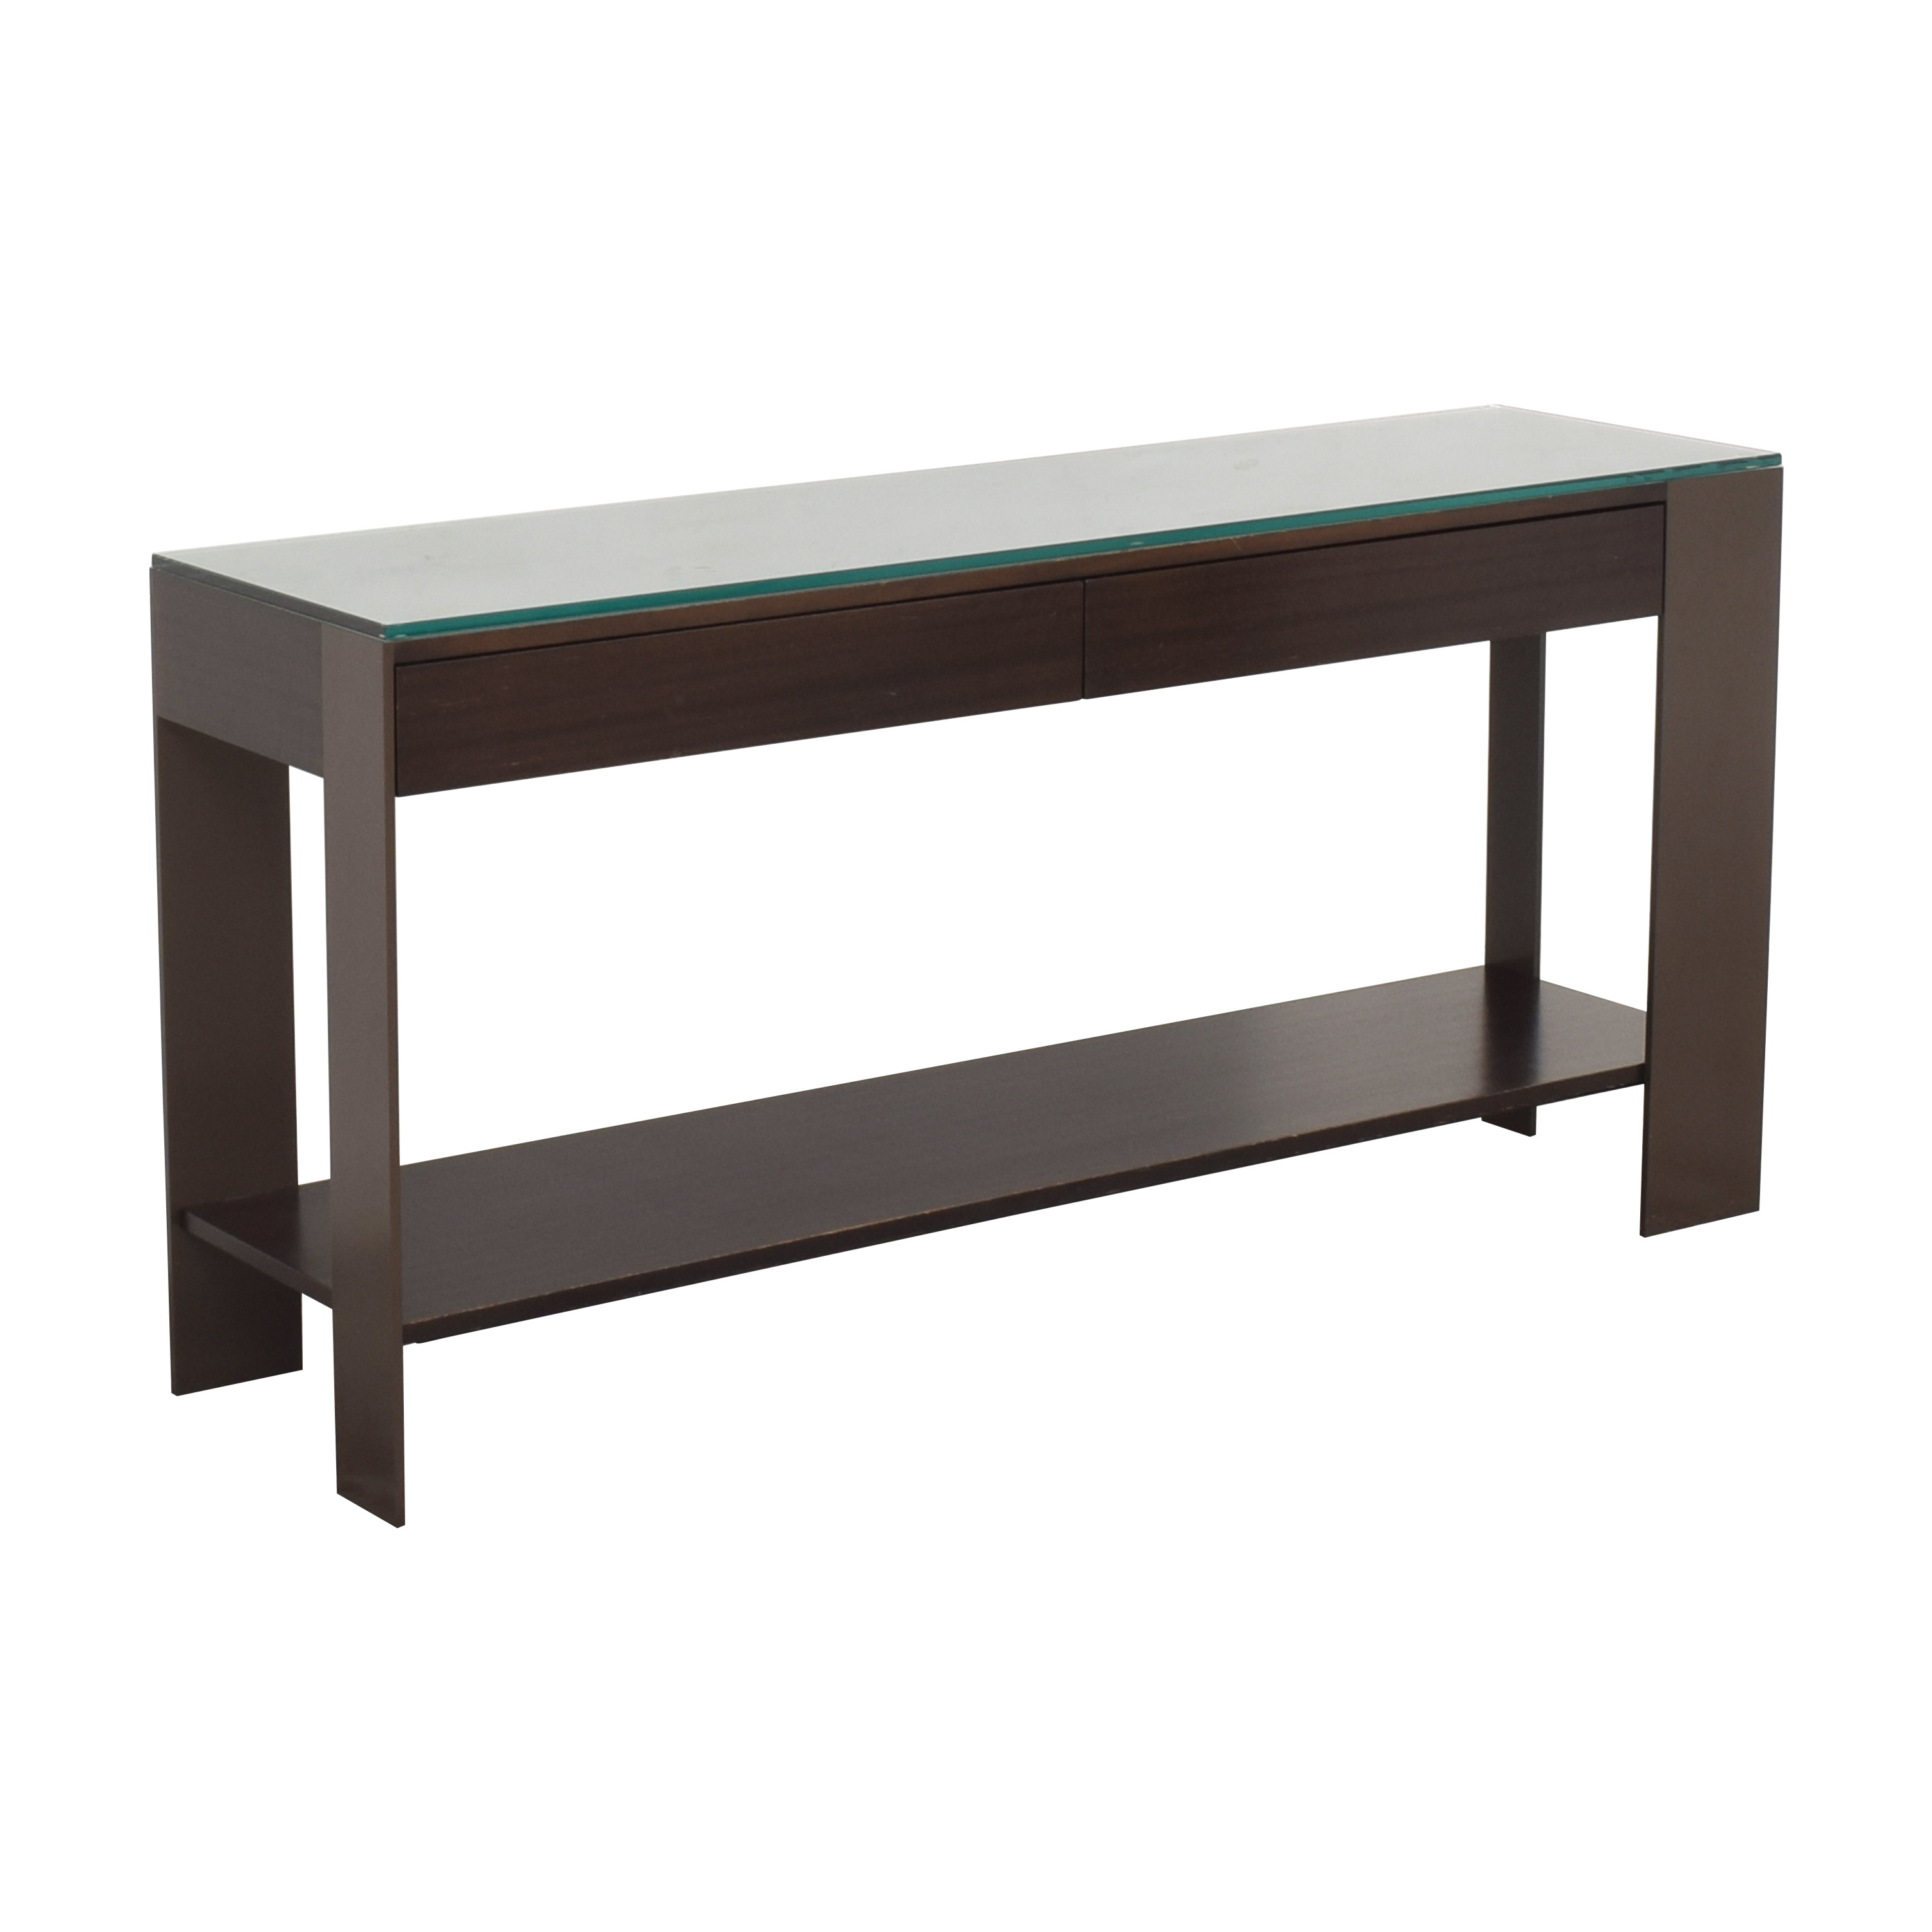 Antoine Proulx Antoine Proulx Console with Shelf Accent Tables